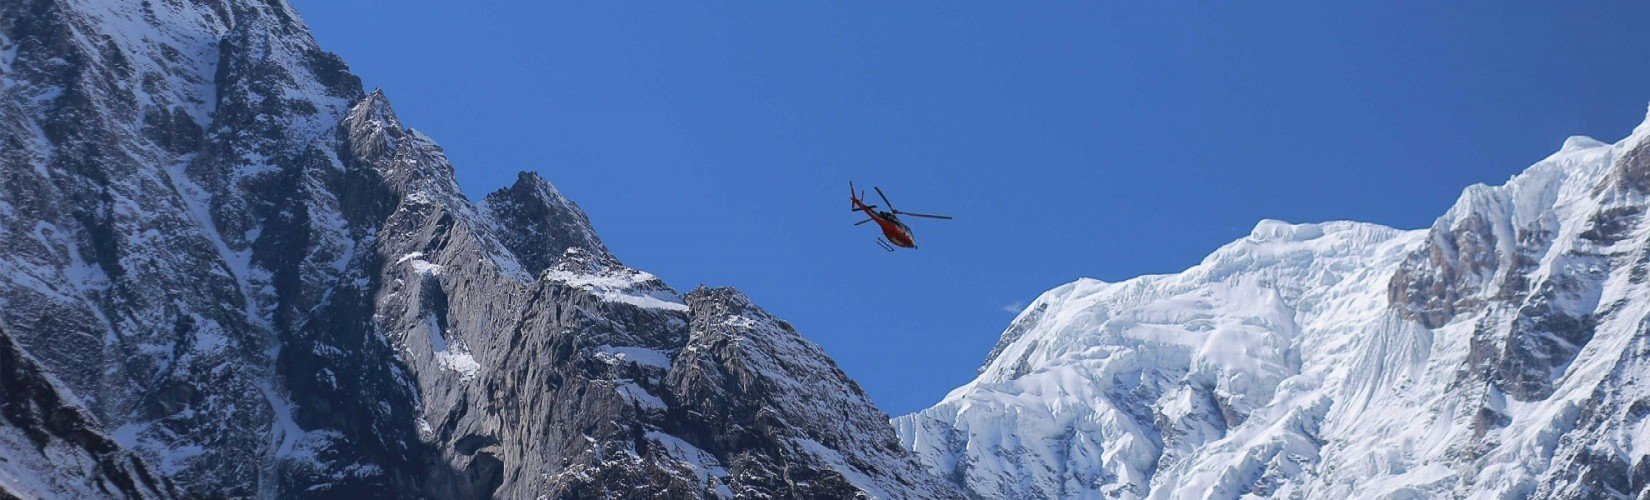 Annapurna Base Camp Helicopter Landing Tour from Pokhara